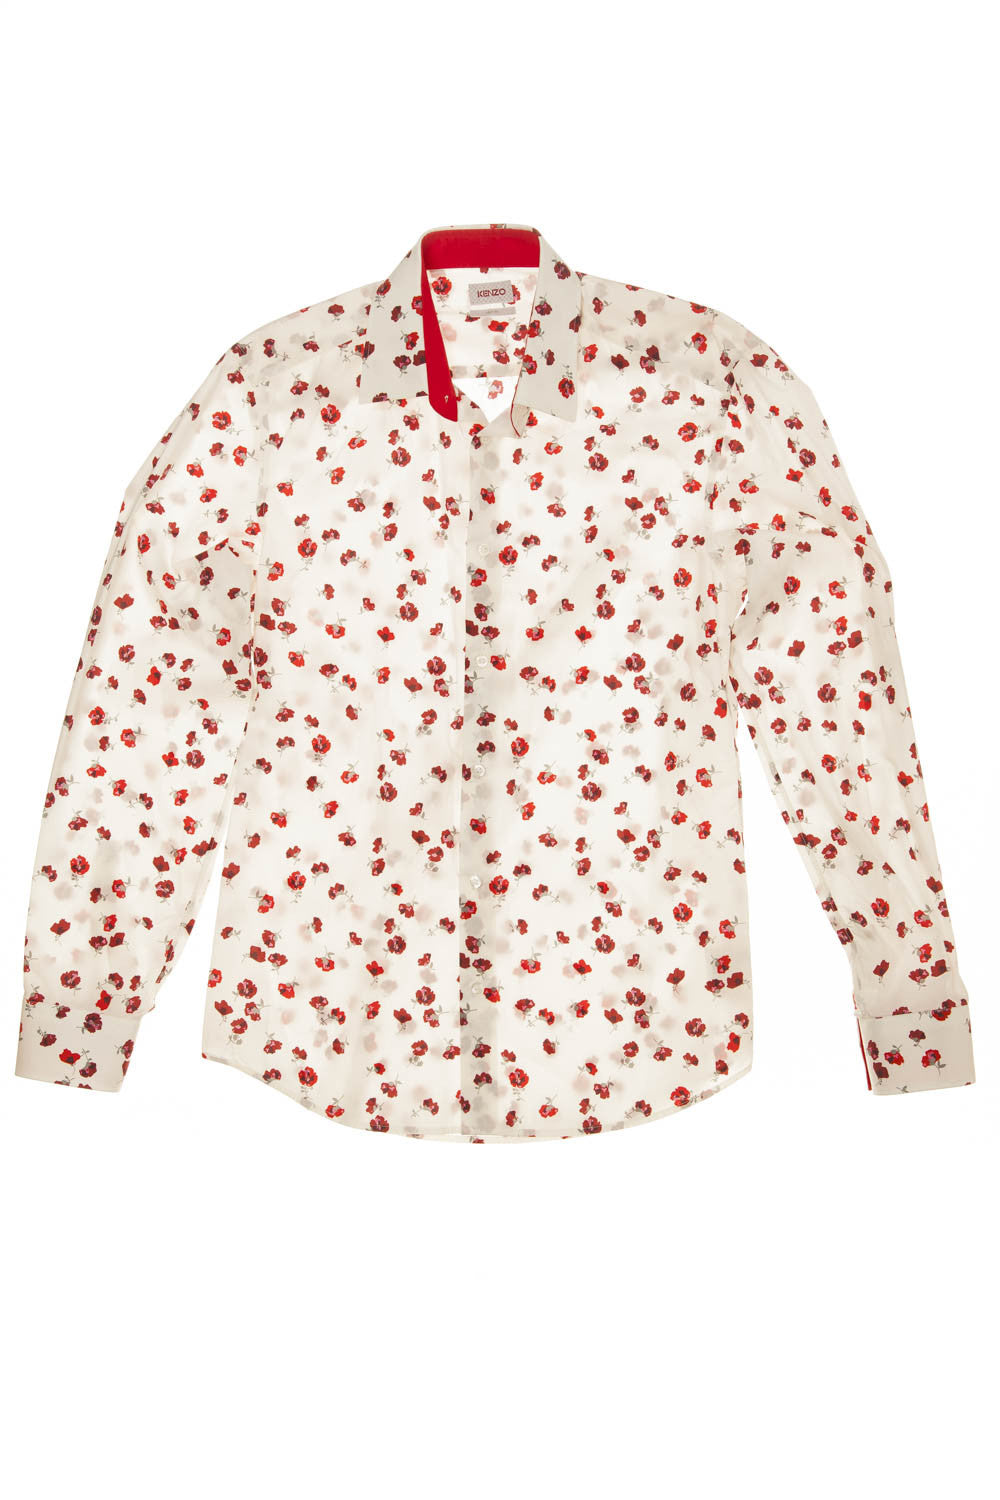 Kenzo - White Blouse with Red Flowers - IT 39 - $250